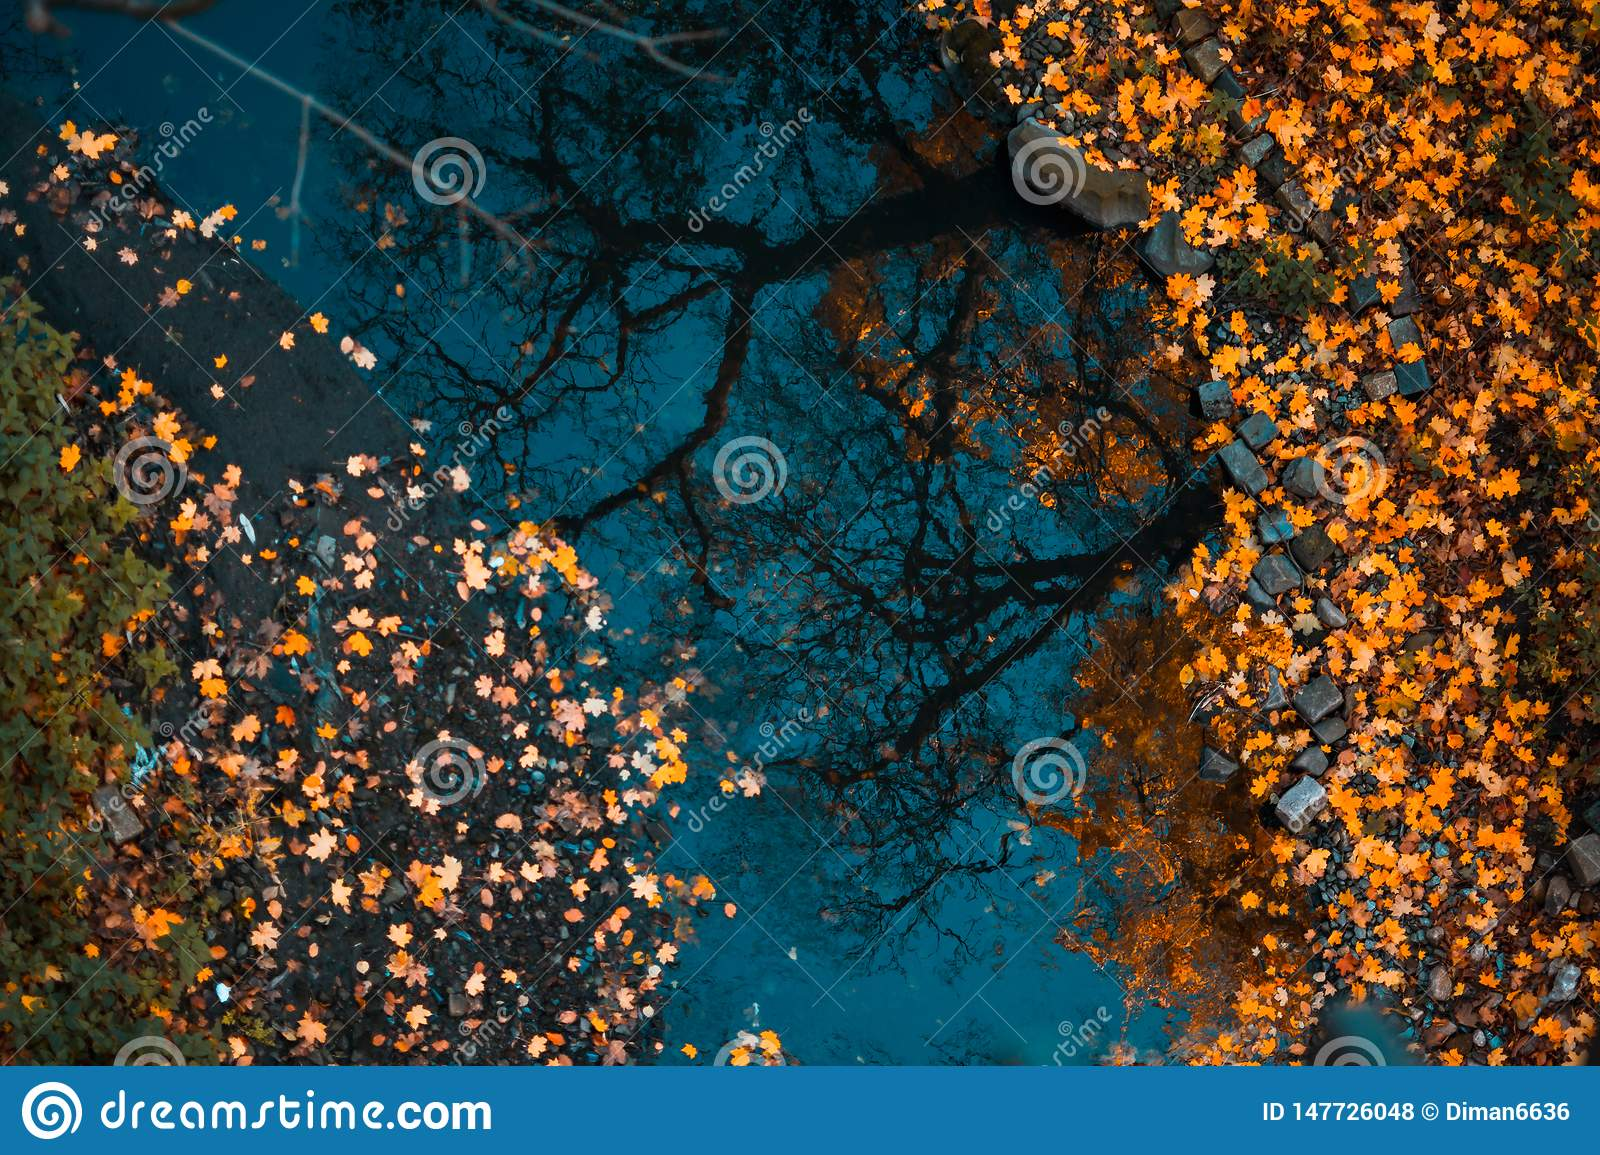 Colorful foliage floating in the dark water with reflection of the trees